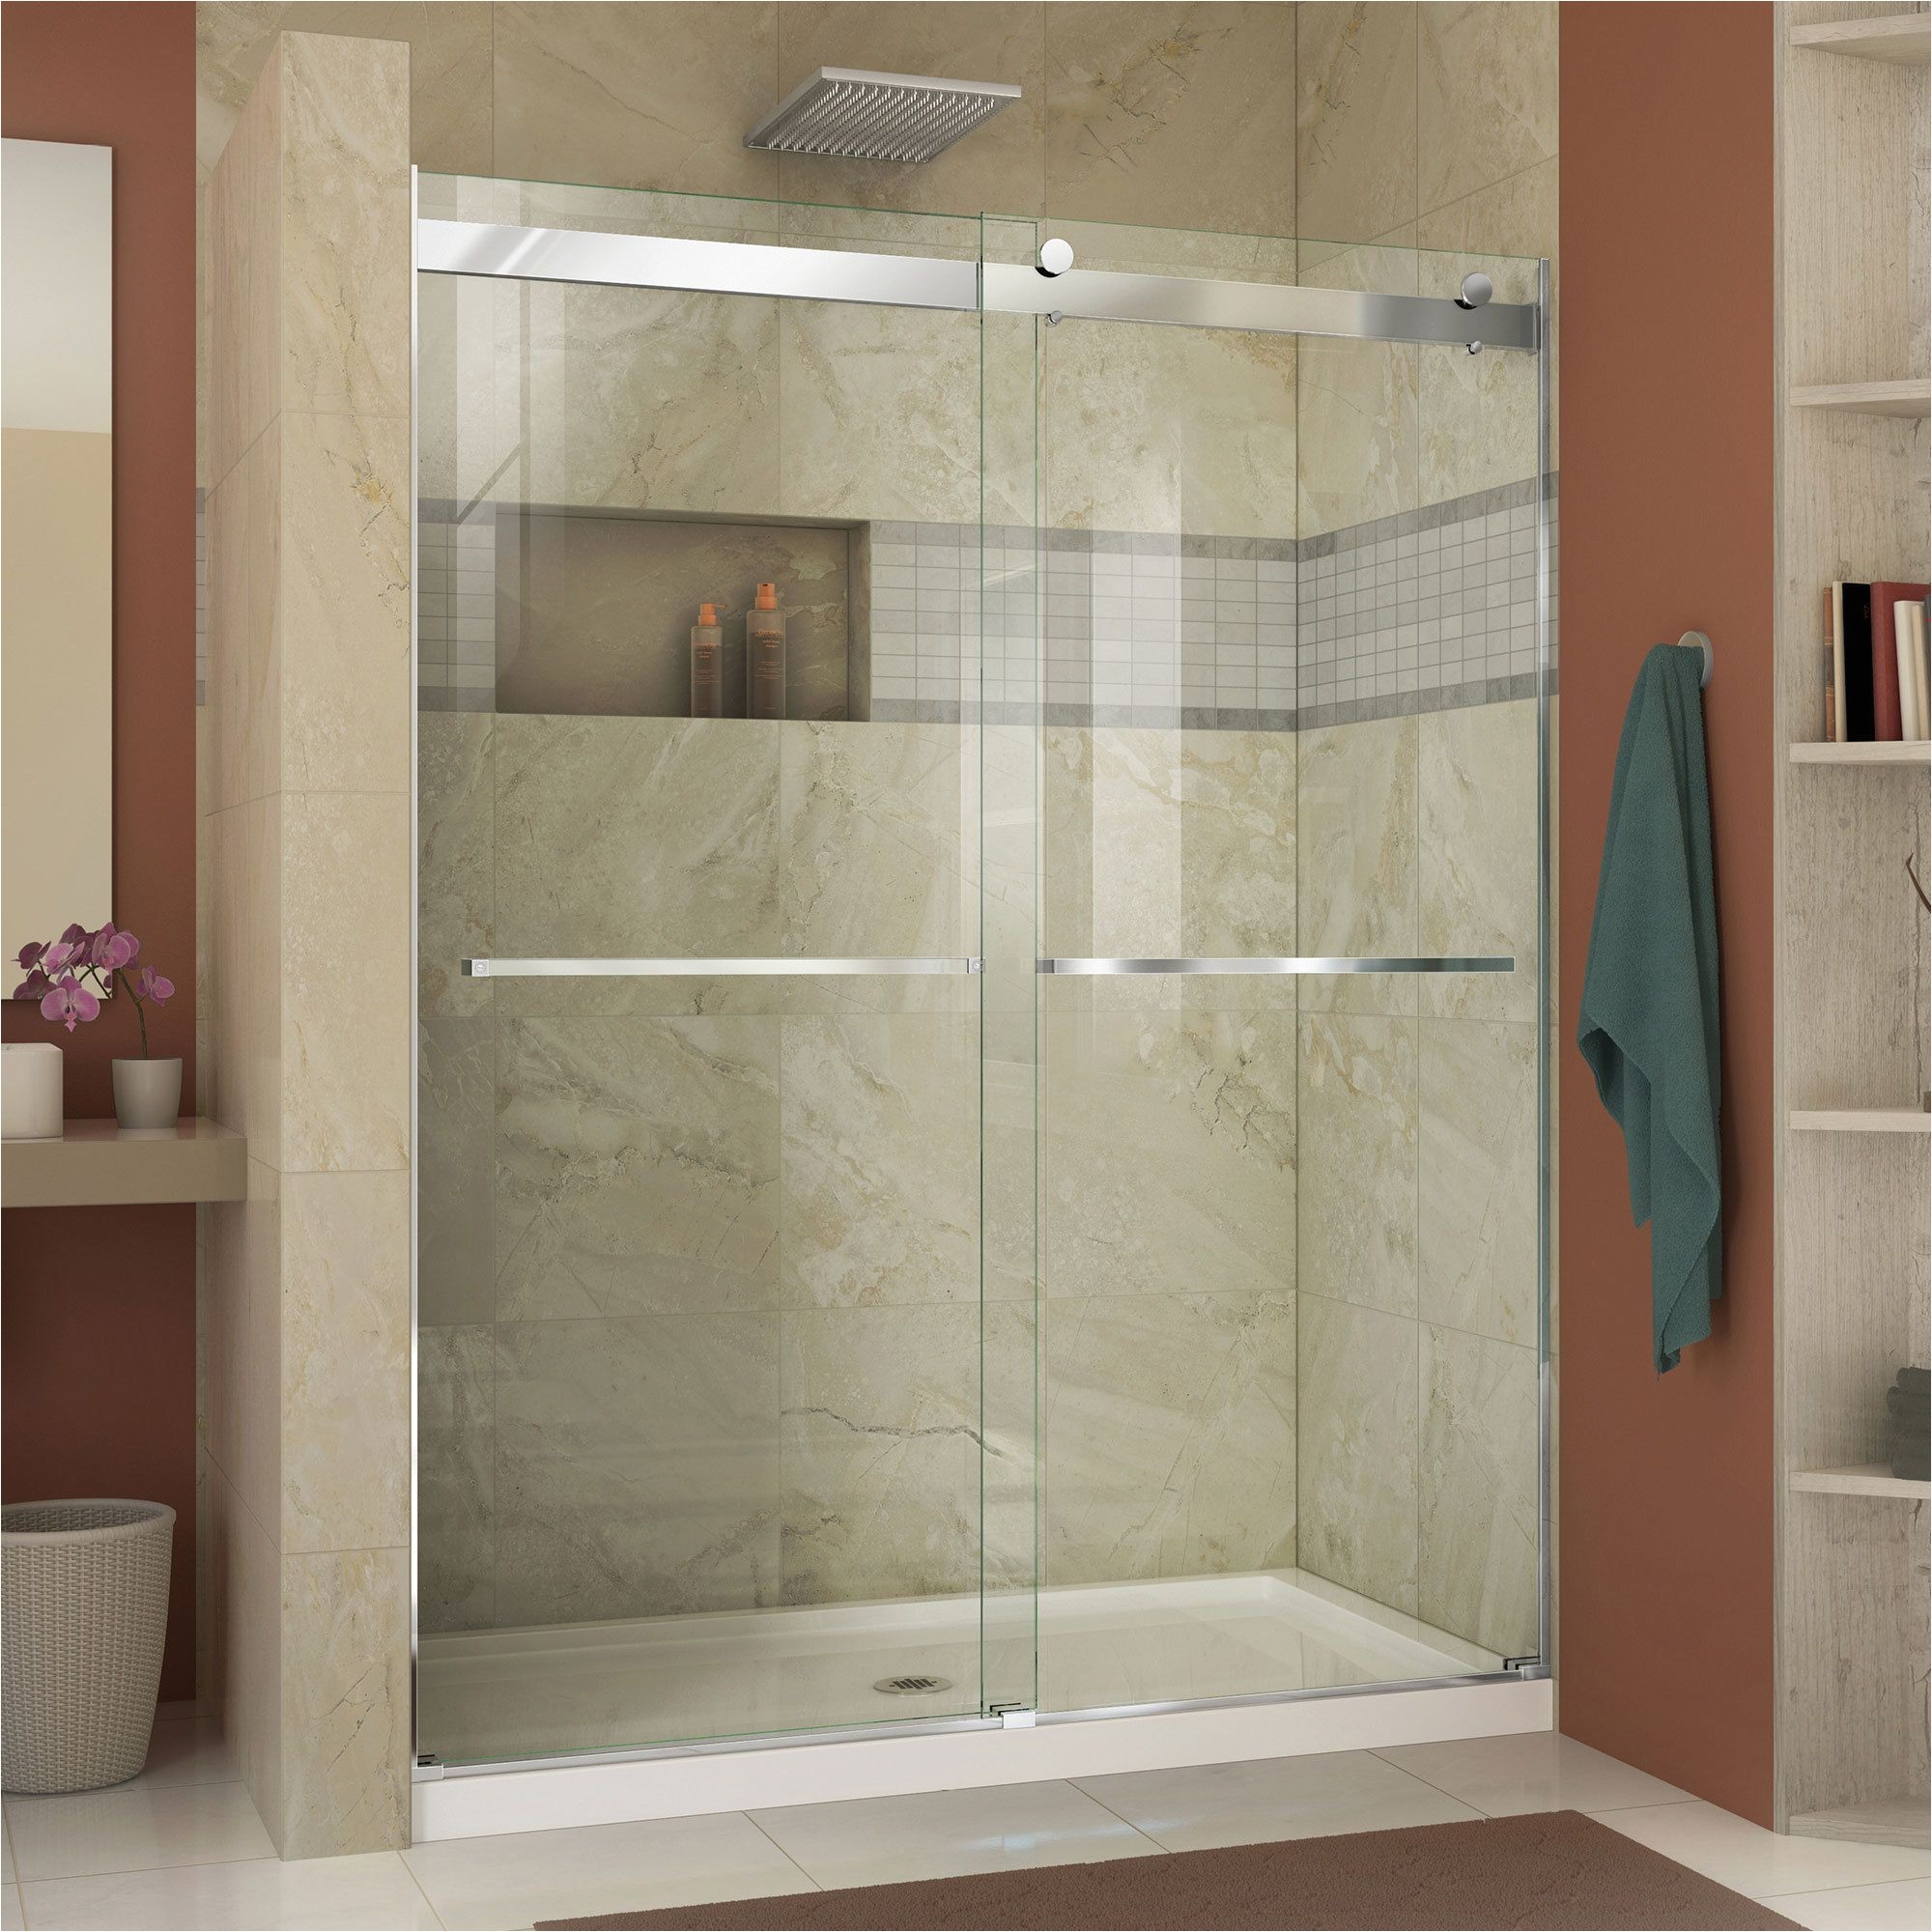 dreamline enigma x 56 to 60 inches fully frameless sliding shower door overstock com shopping the best deals on shower doors house pinterest